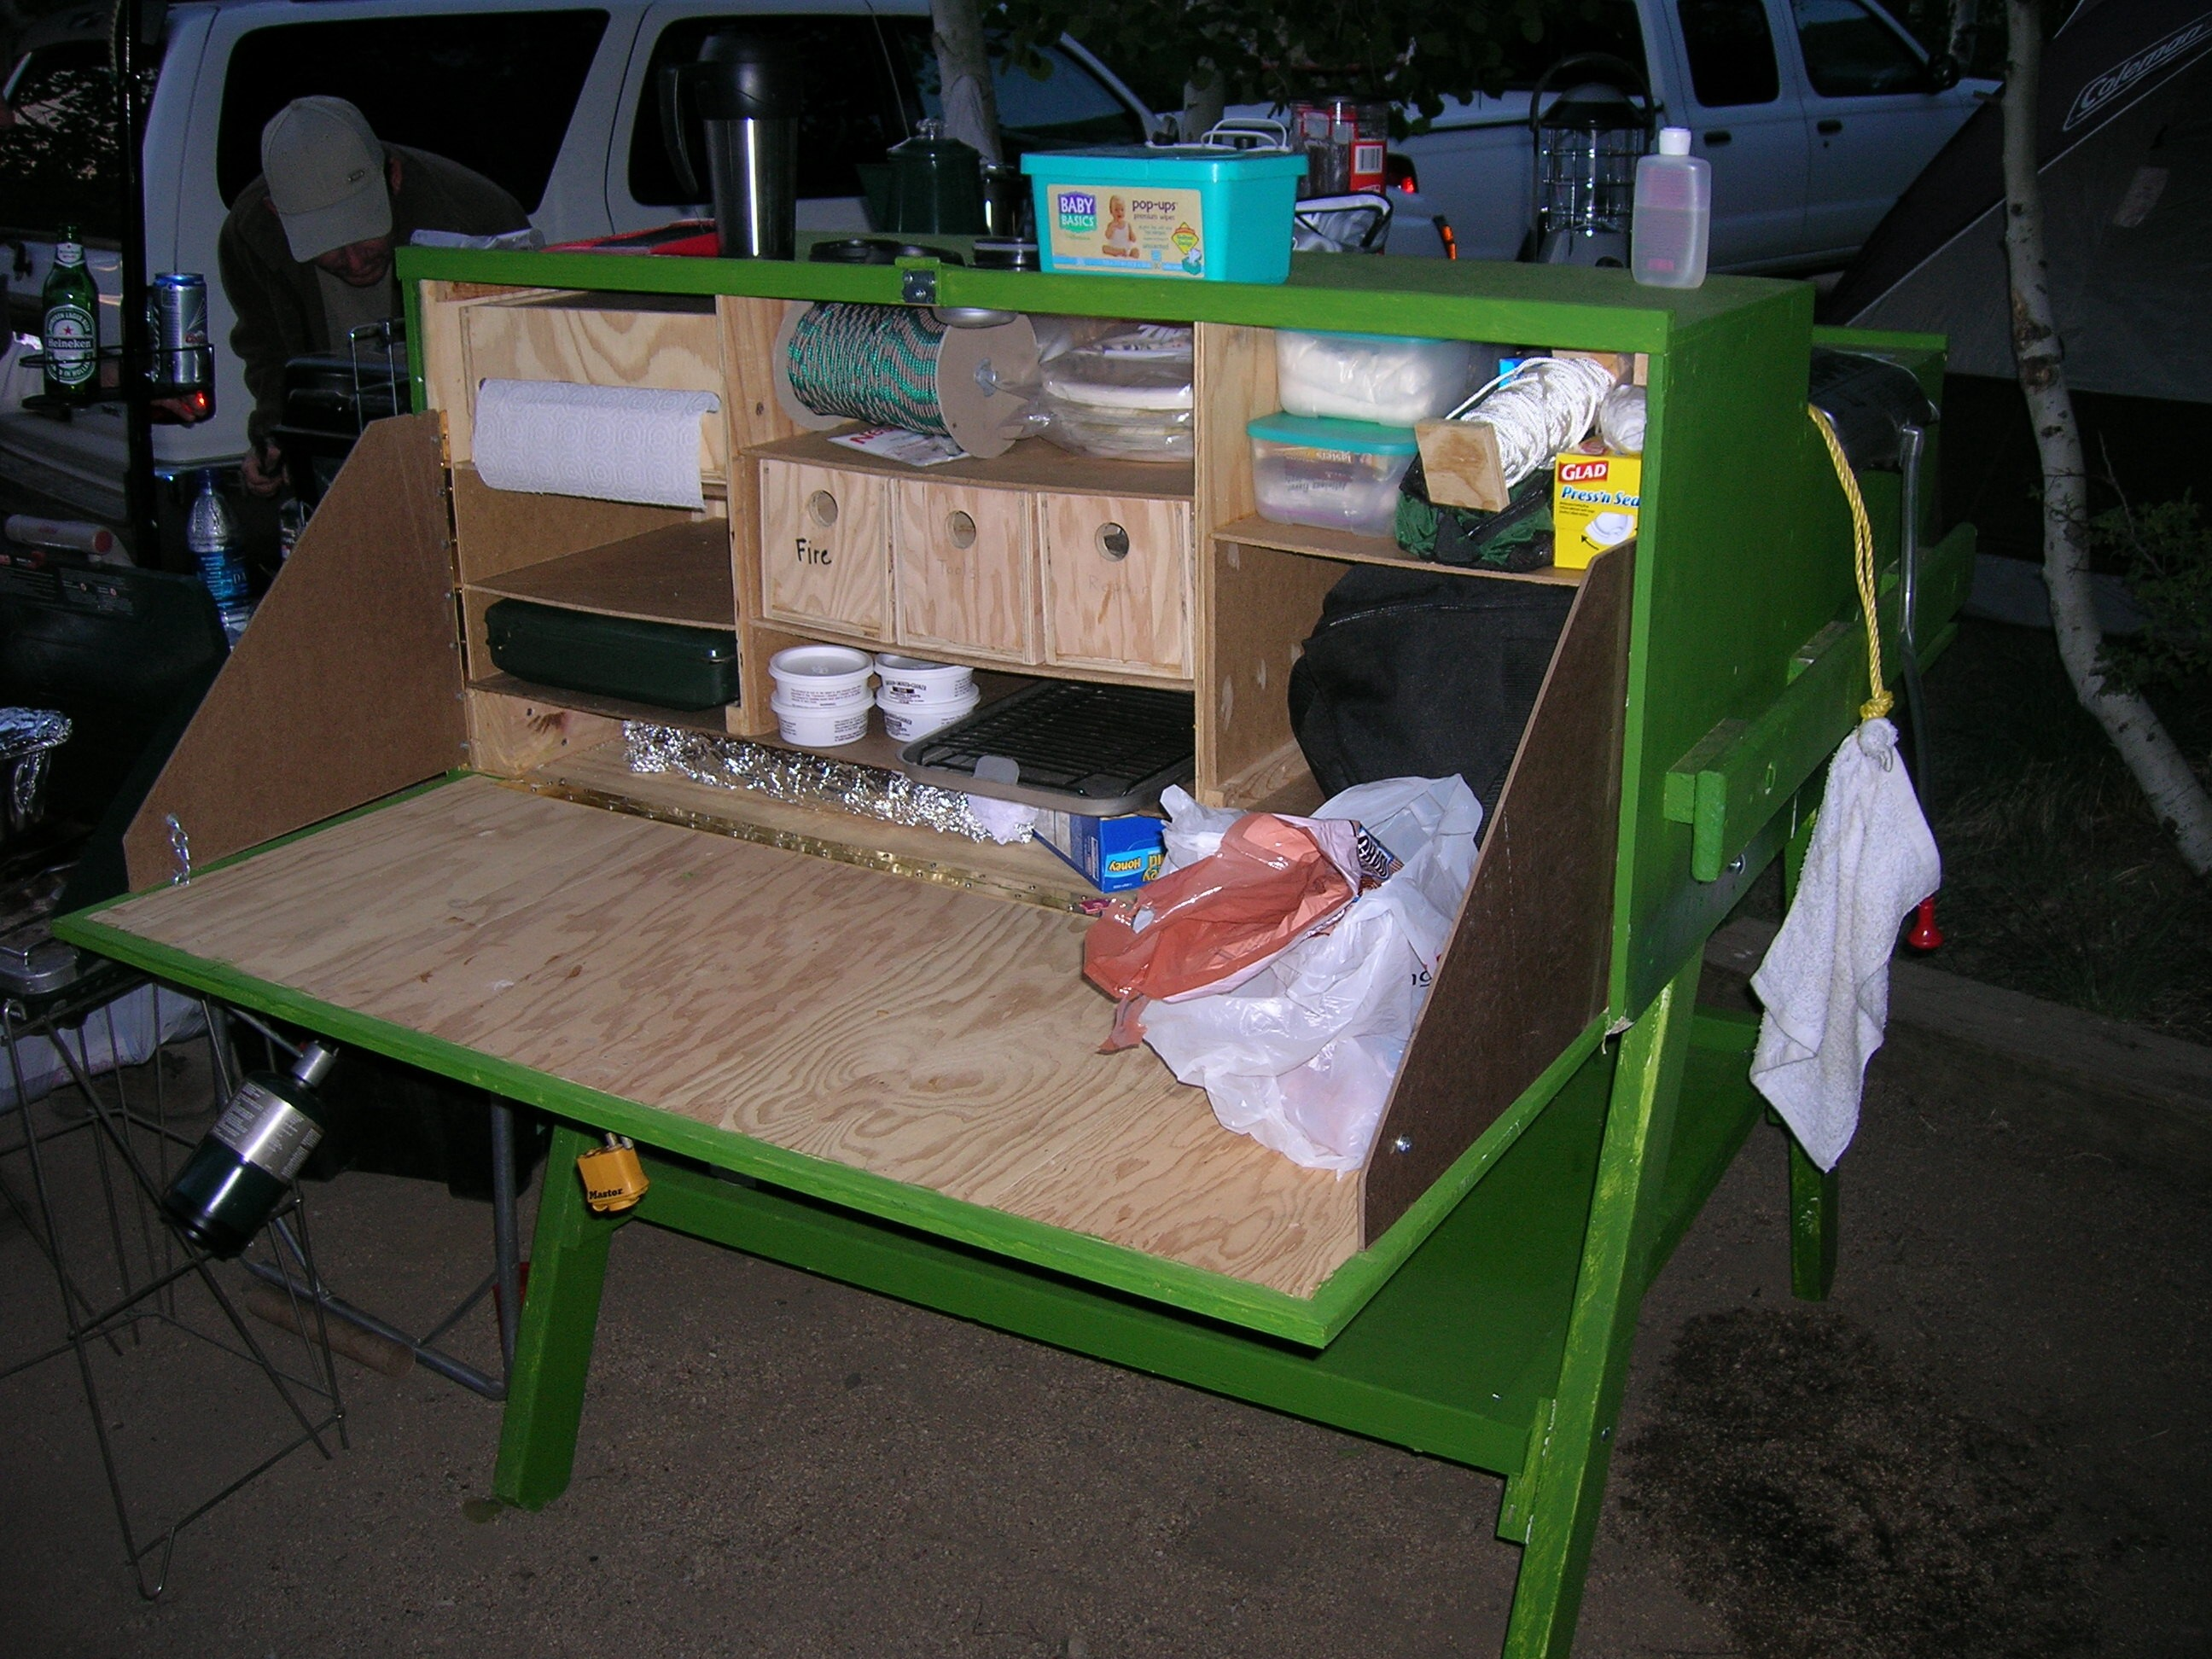 Wooden Camp Kitchen http://betterwithboys.com/image/chuck-boxes